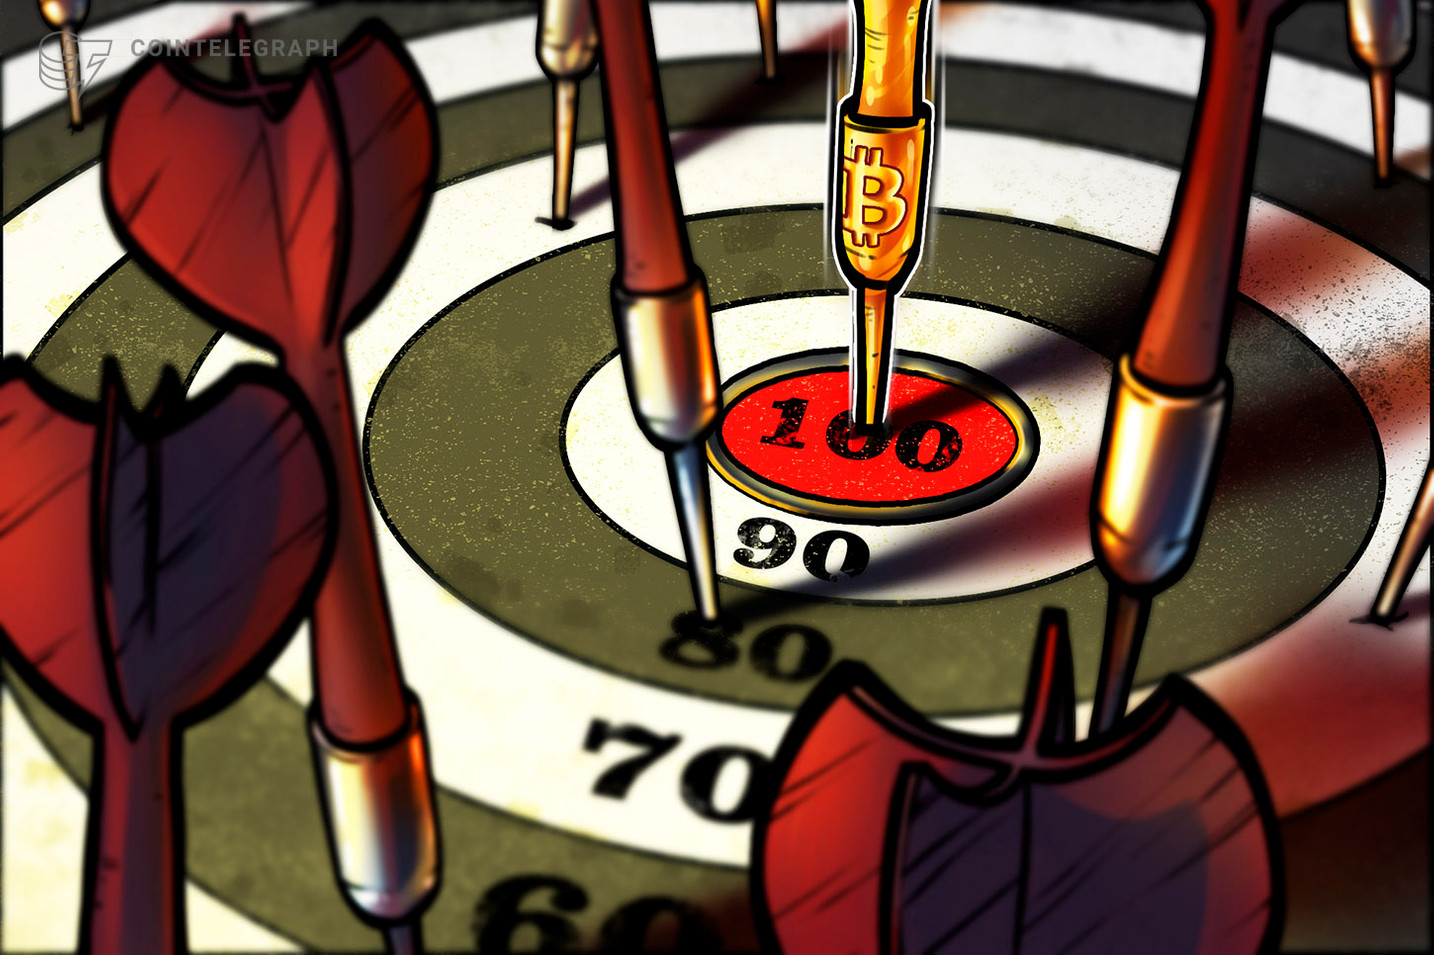 Believing, not seeing: Institutions still predict $100K Bitcoin price